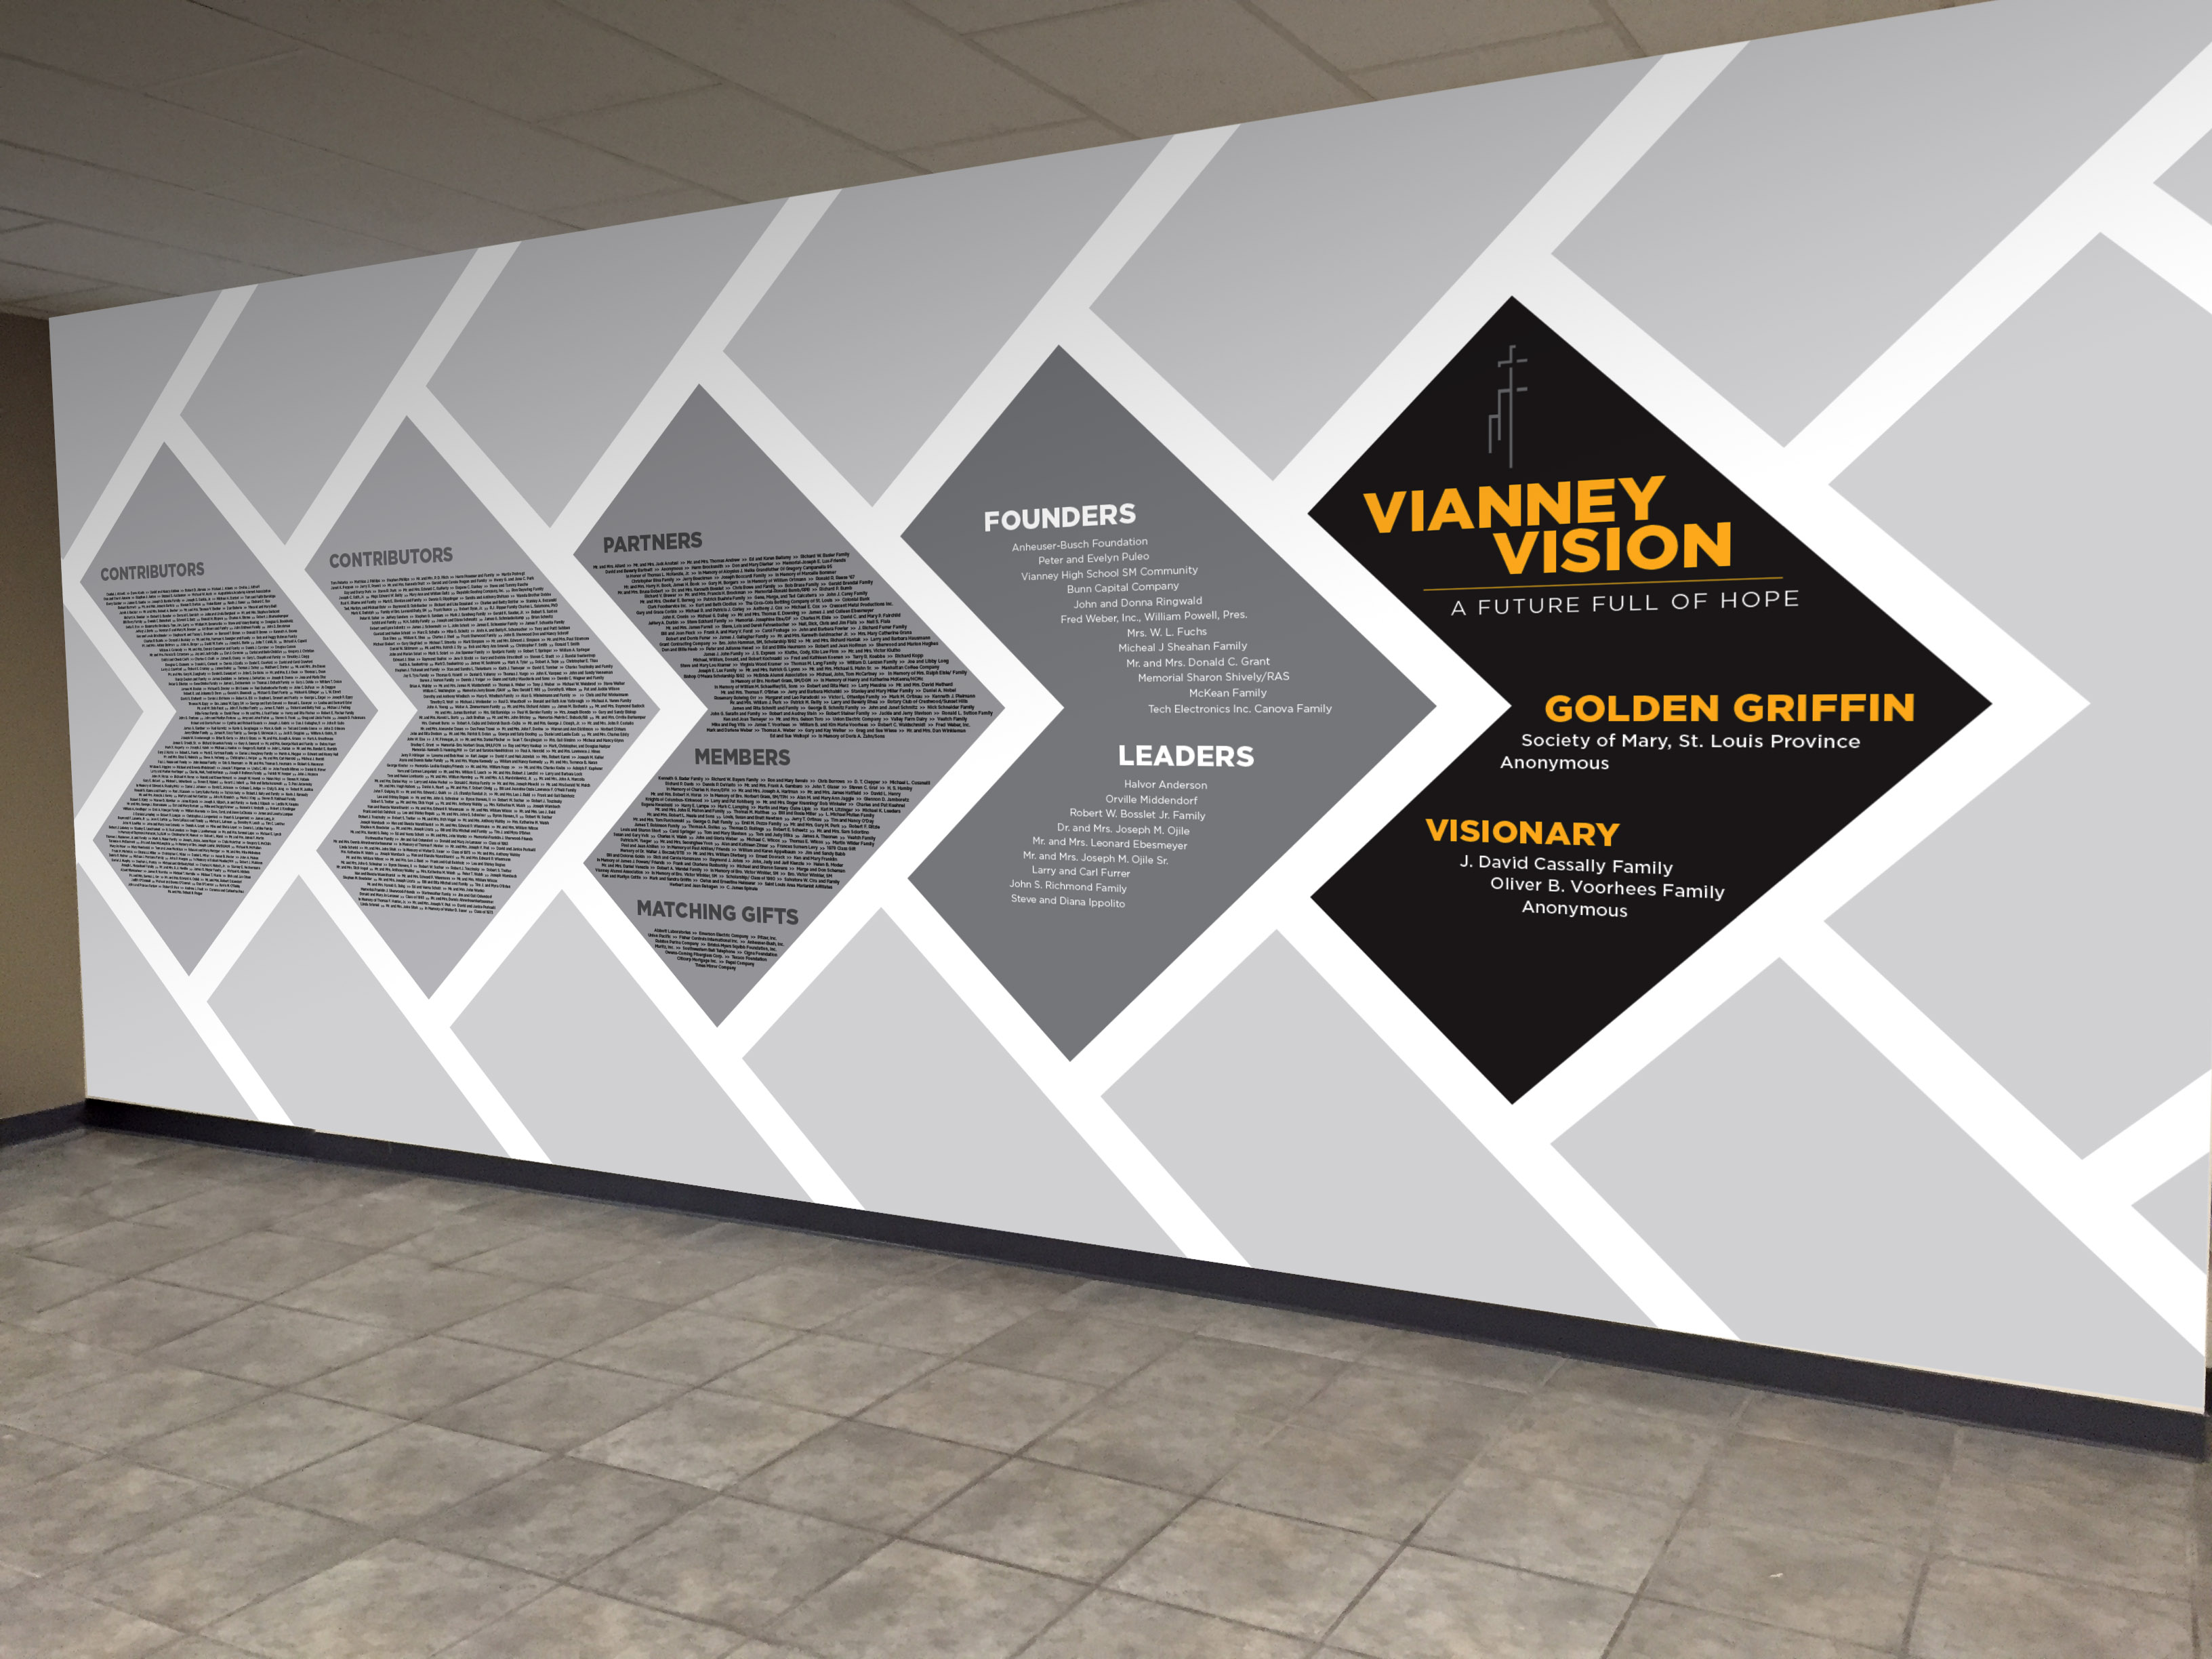 Conceptual Donor Wall for Vianney